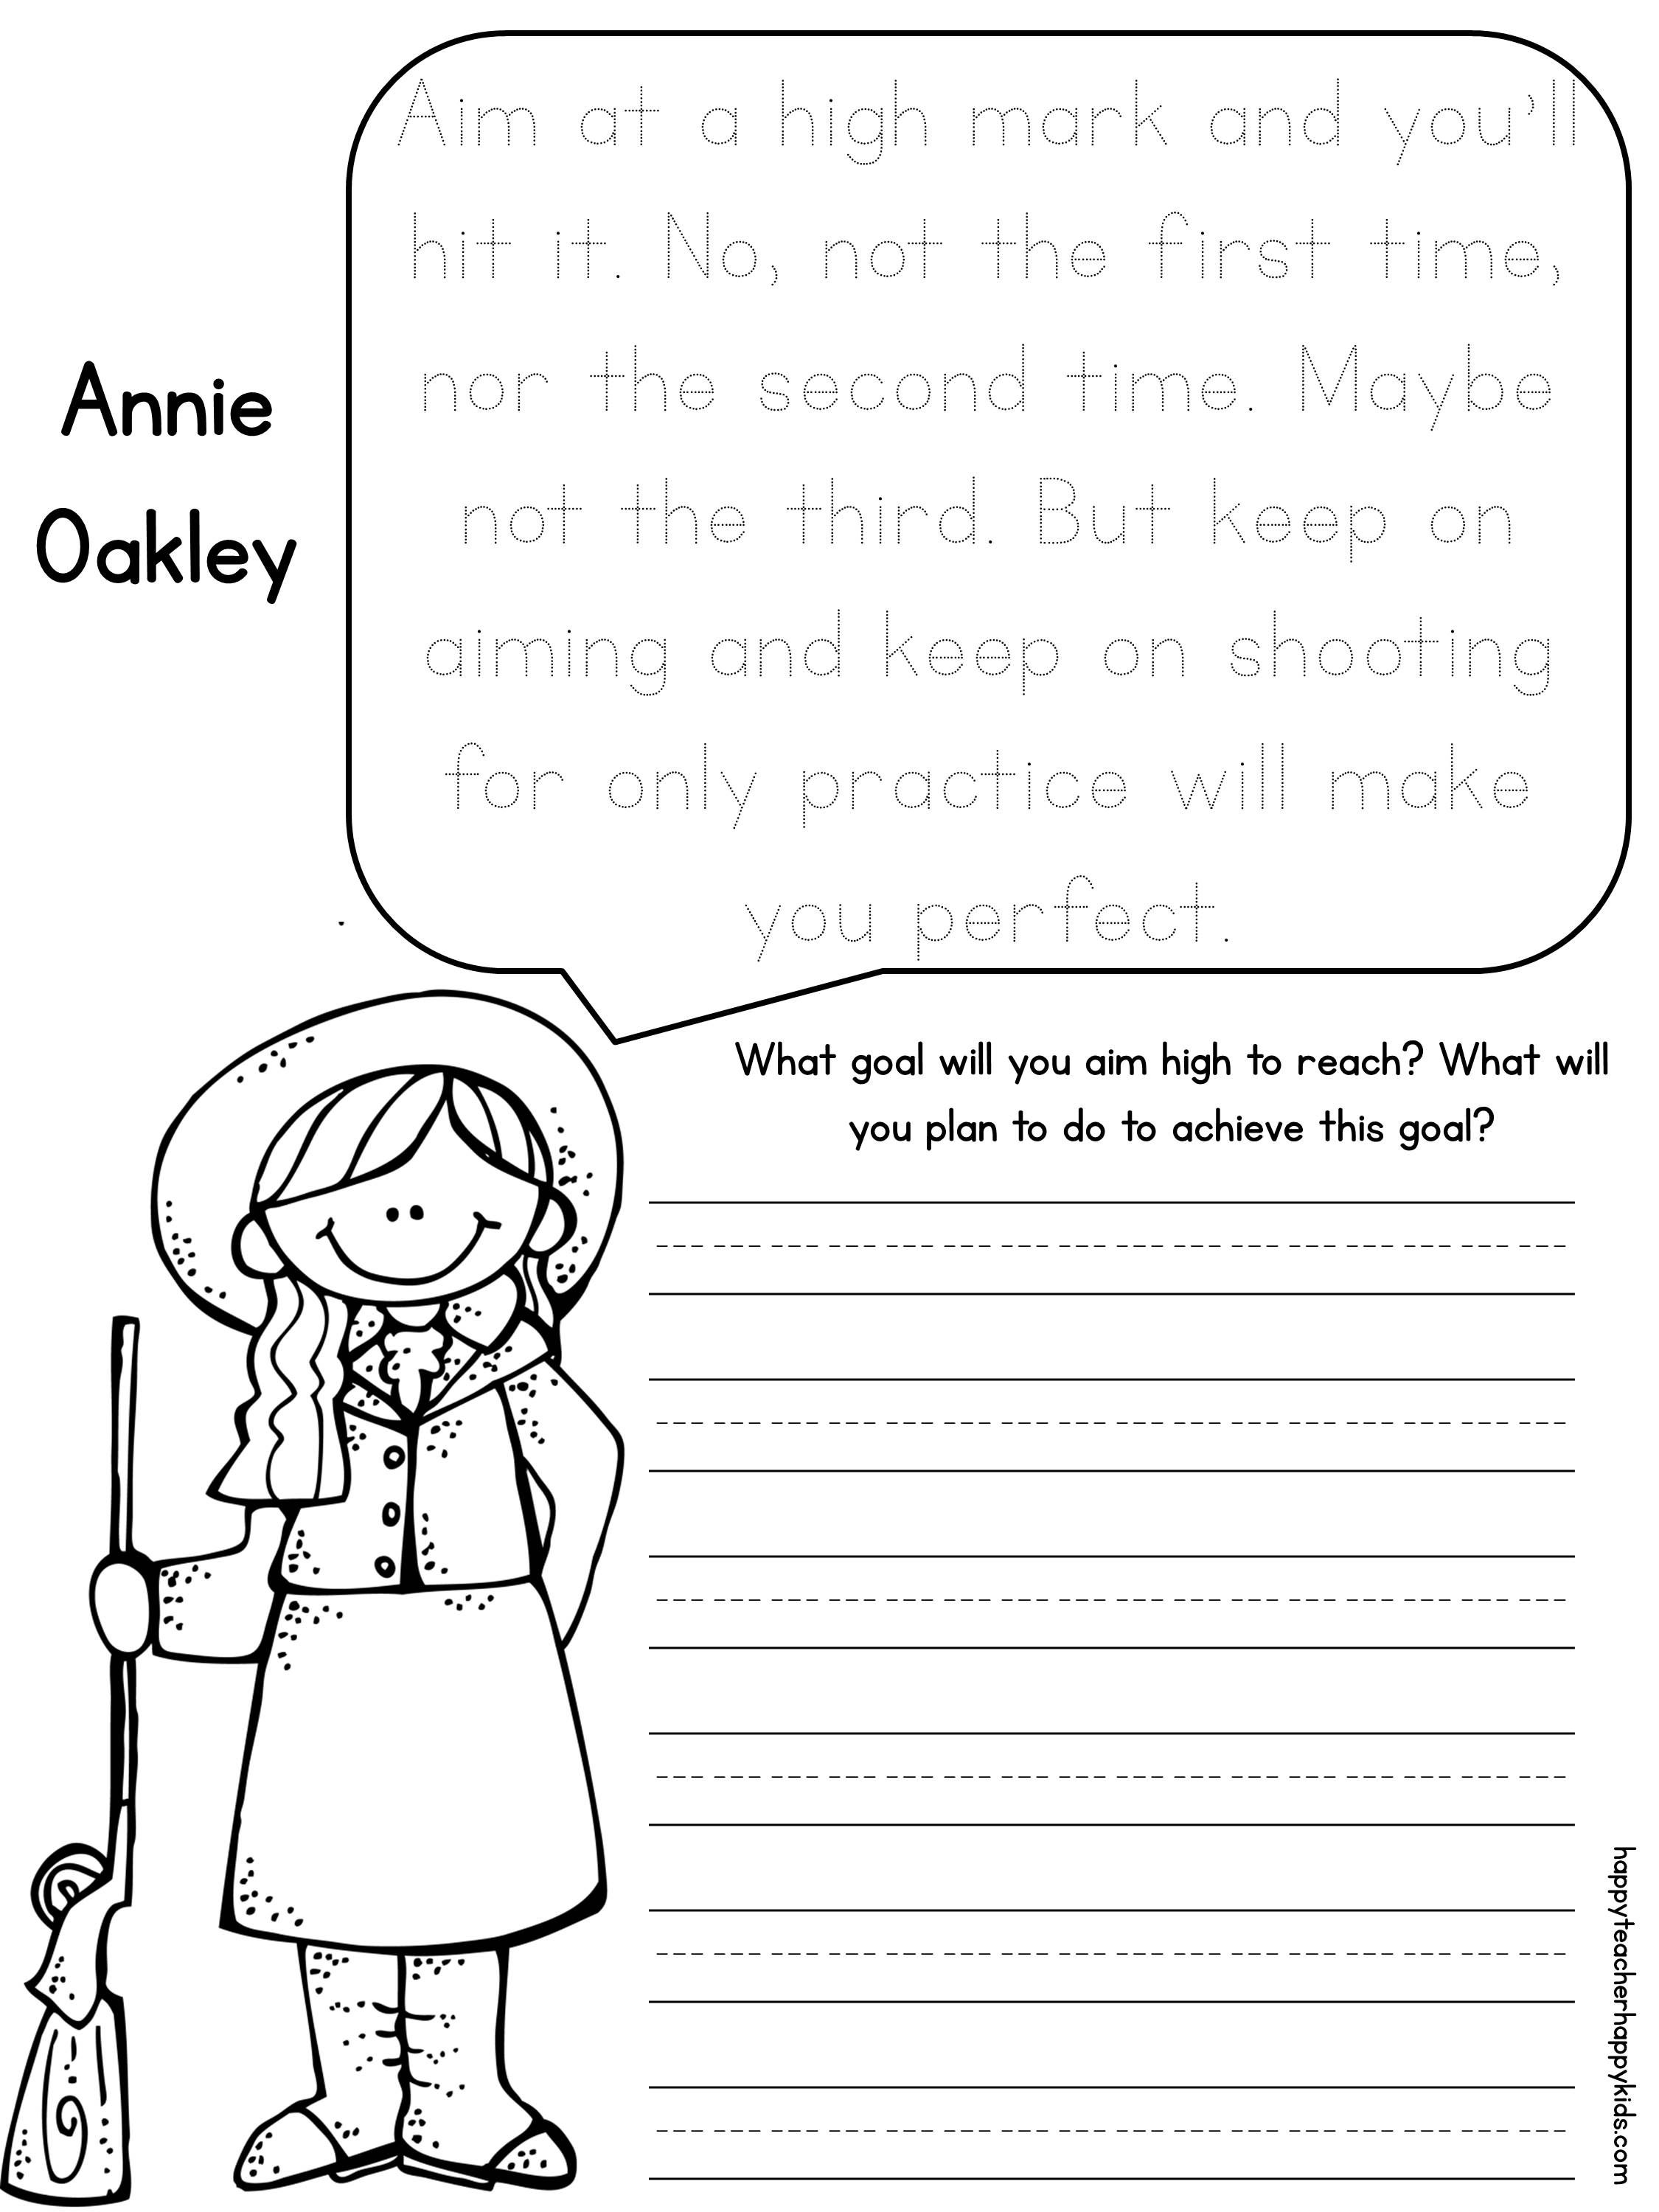 small resolution of Annie Oakley Women's History Month Freebie!   History worksheets